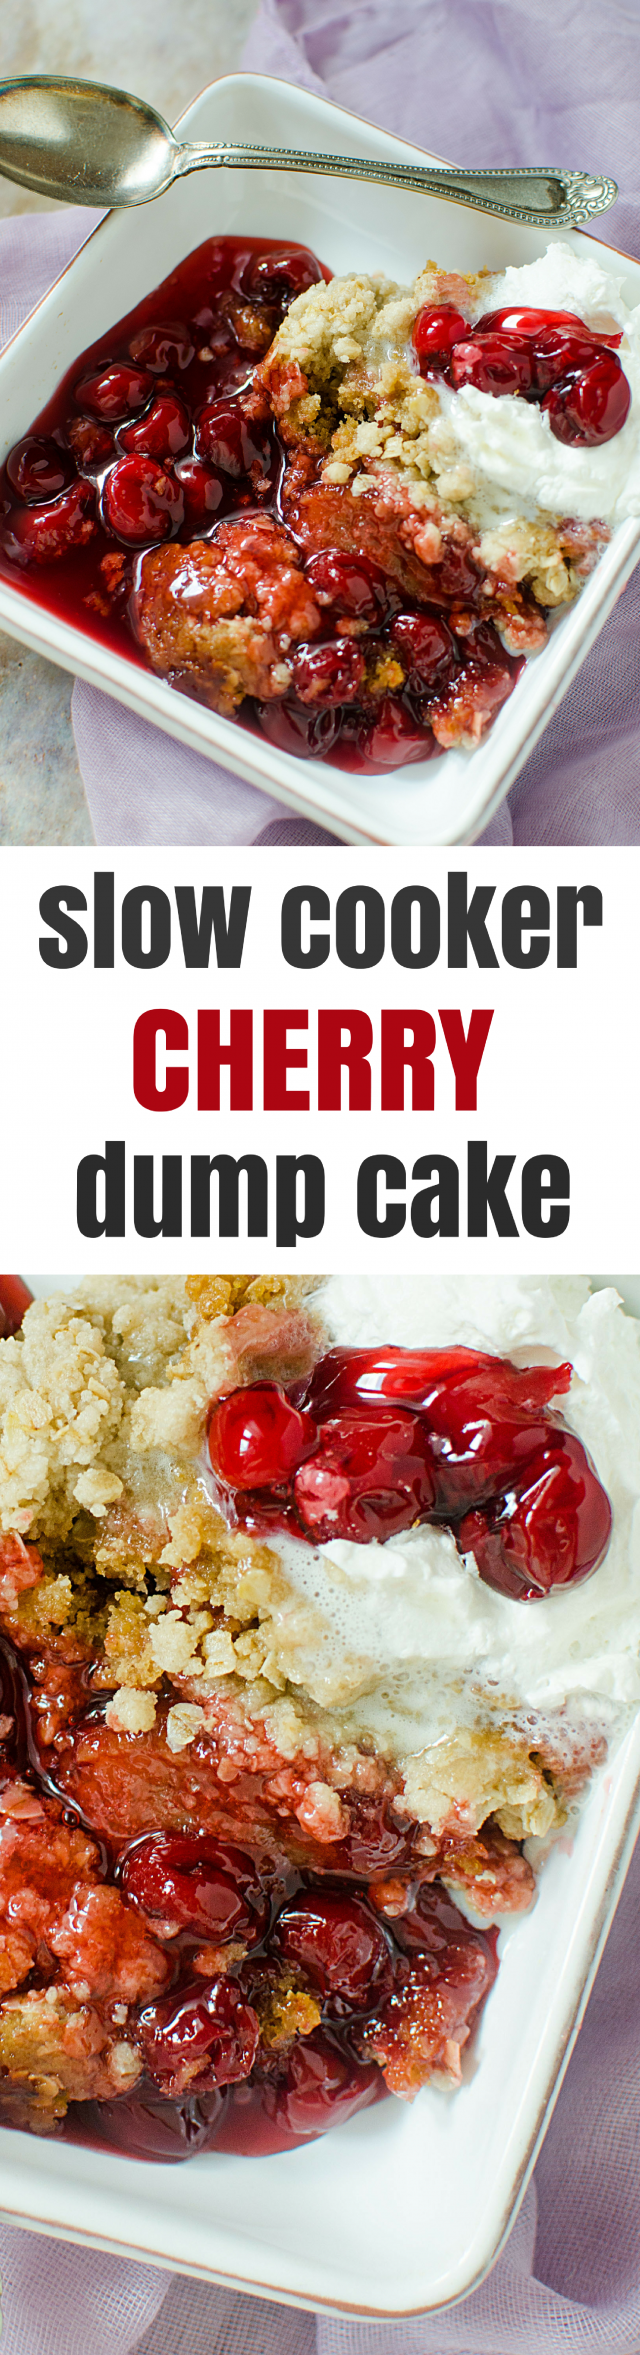 Slow Cooker Cherry Cake Mix Dump Cake Recipe The slow cooker was probably the best invention ever made. Okay, perhaps that is a bit extreme, but I am REALLY grateful for this genius appliance. There are many, many delicious dinner recipes that can be made in a Crock-pot slow cooker, but did you know that you can also make desserts? Yup, you certainly can. Like today's recipes for Slow Cooker Cherry Cake Mix Dump Cake, for example. Oh yeahhhhhhh!